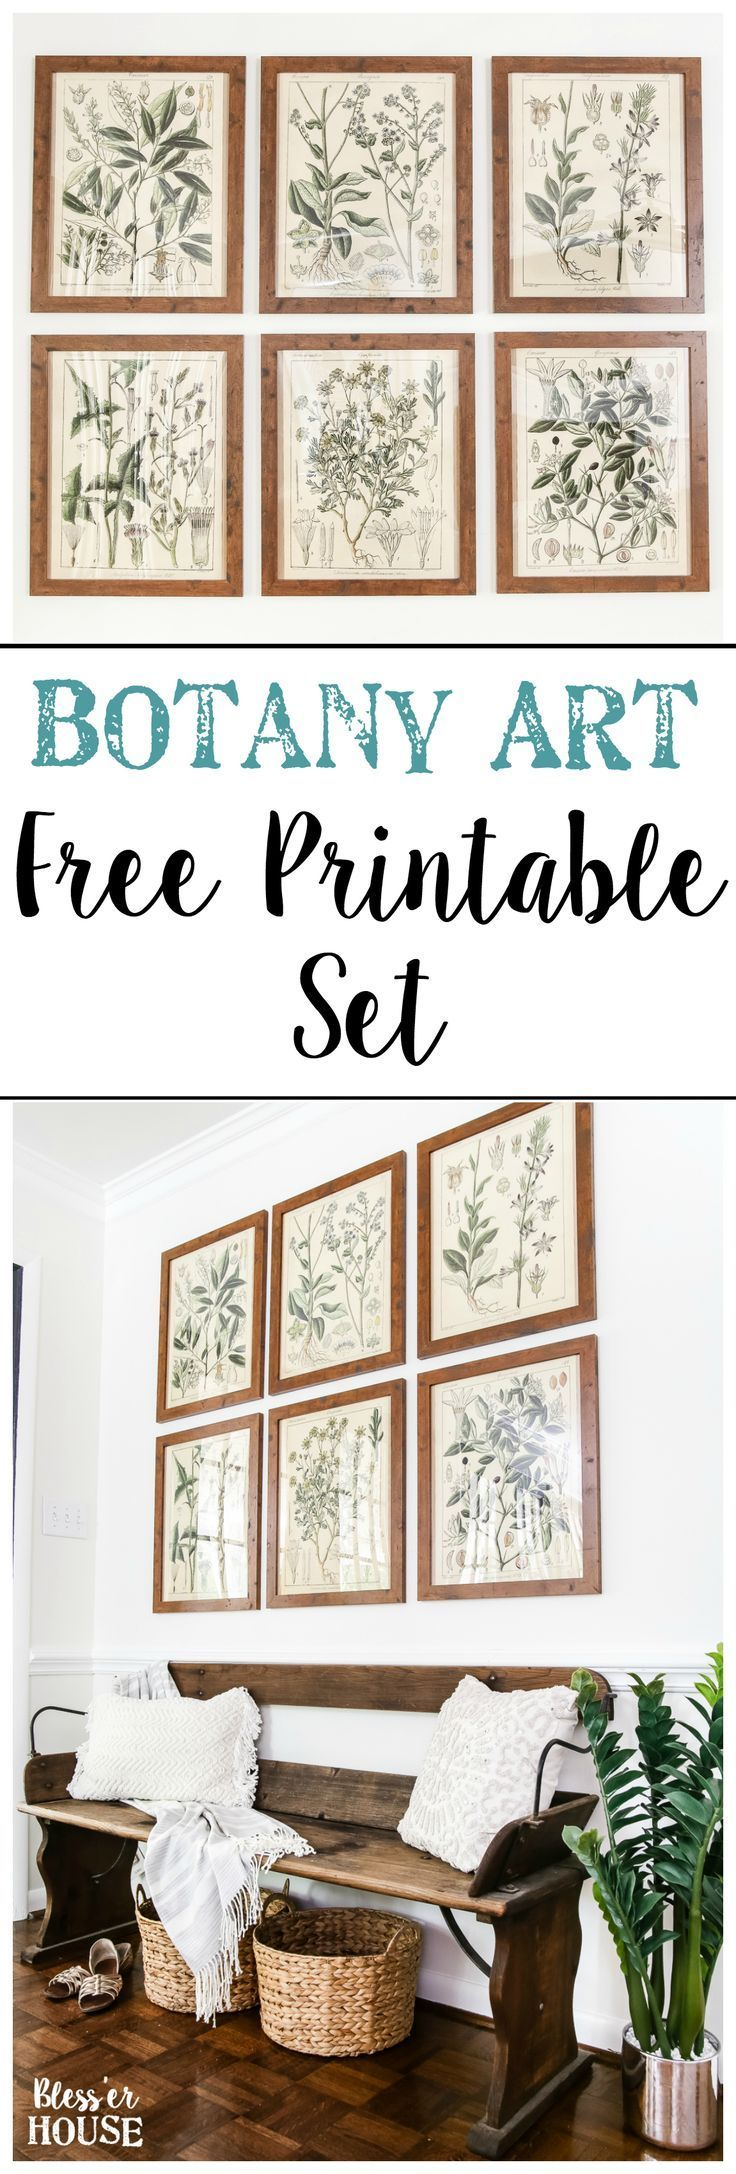 Botany Printable Art and a Wall Decor Hanging Trick | blesserhouse.com - A free download of botany printable art perfect for spring and summer, plus a wall decor hanging hack to make hanging frames quick and easy. #freeprintable #farmhouseprintable #springdecor #walldecor